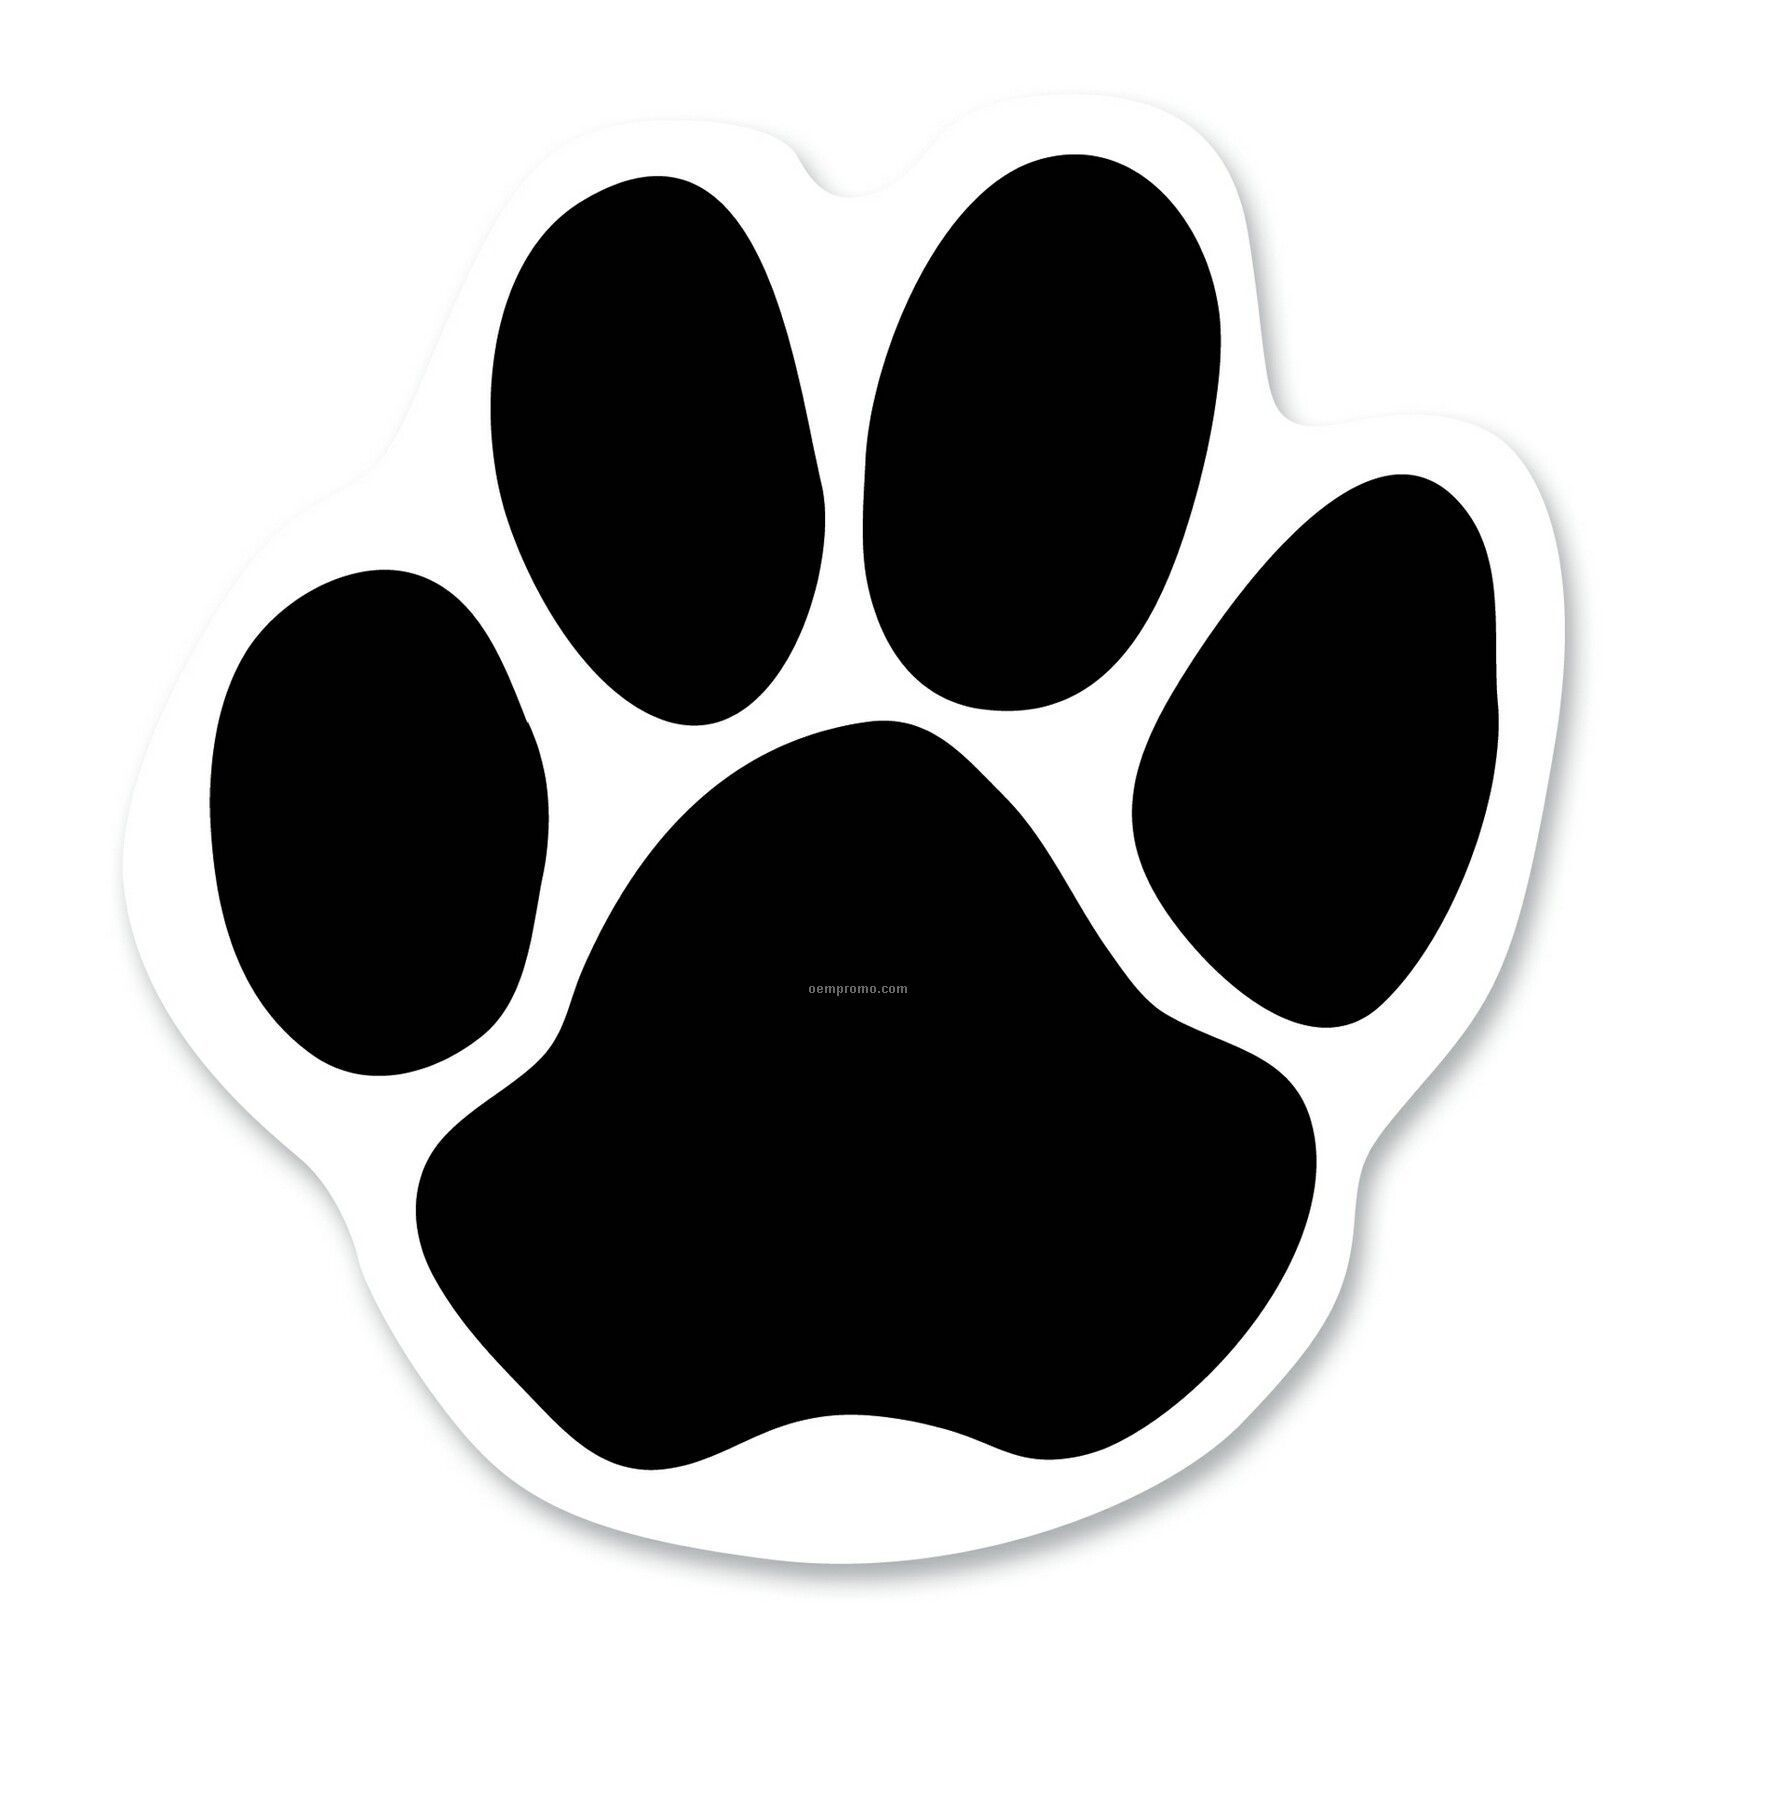 Dog Paw Paw Prints Transparent Background Png Clipart Paw Illustration Dog Paws Dog Paw Tattoo